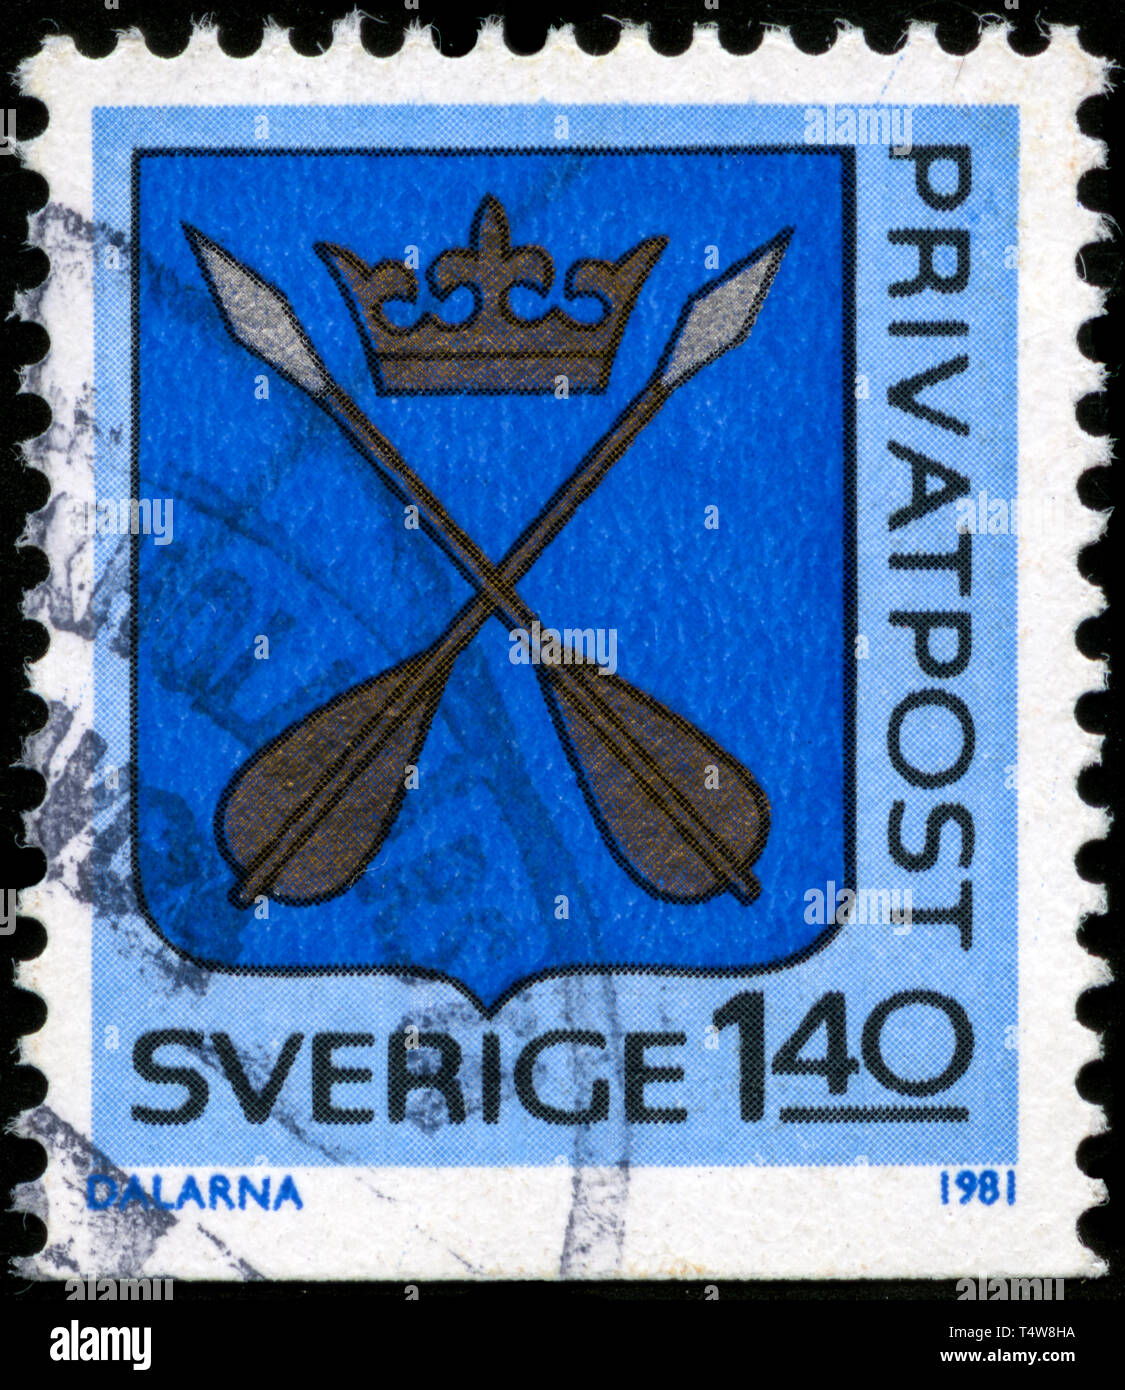 Postage stamp from Sweden in the Discount stamps series issued in 1981 - Stock Image